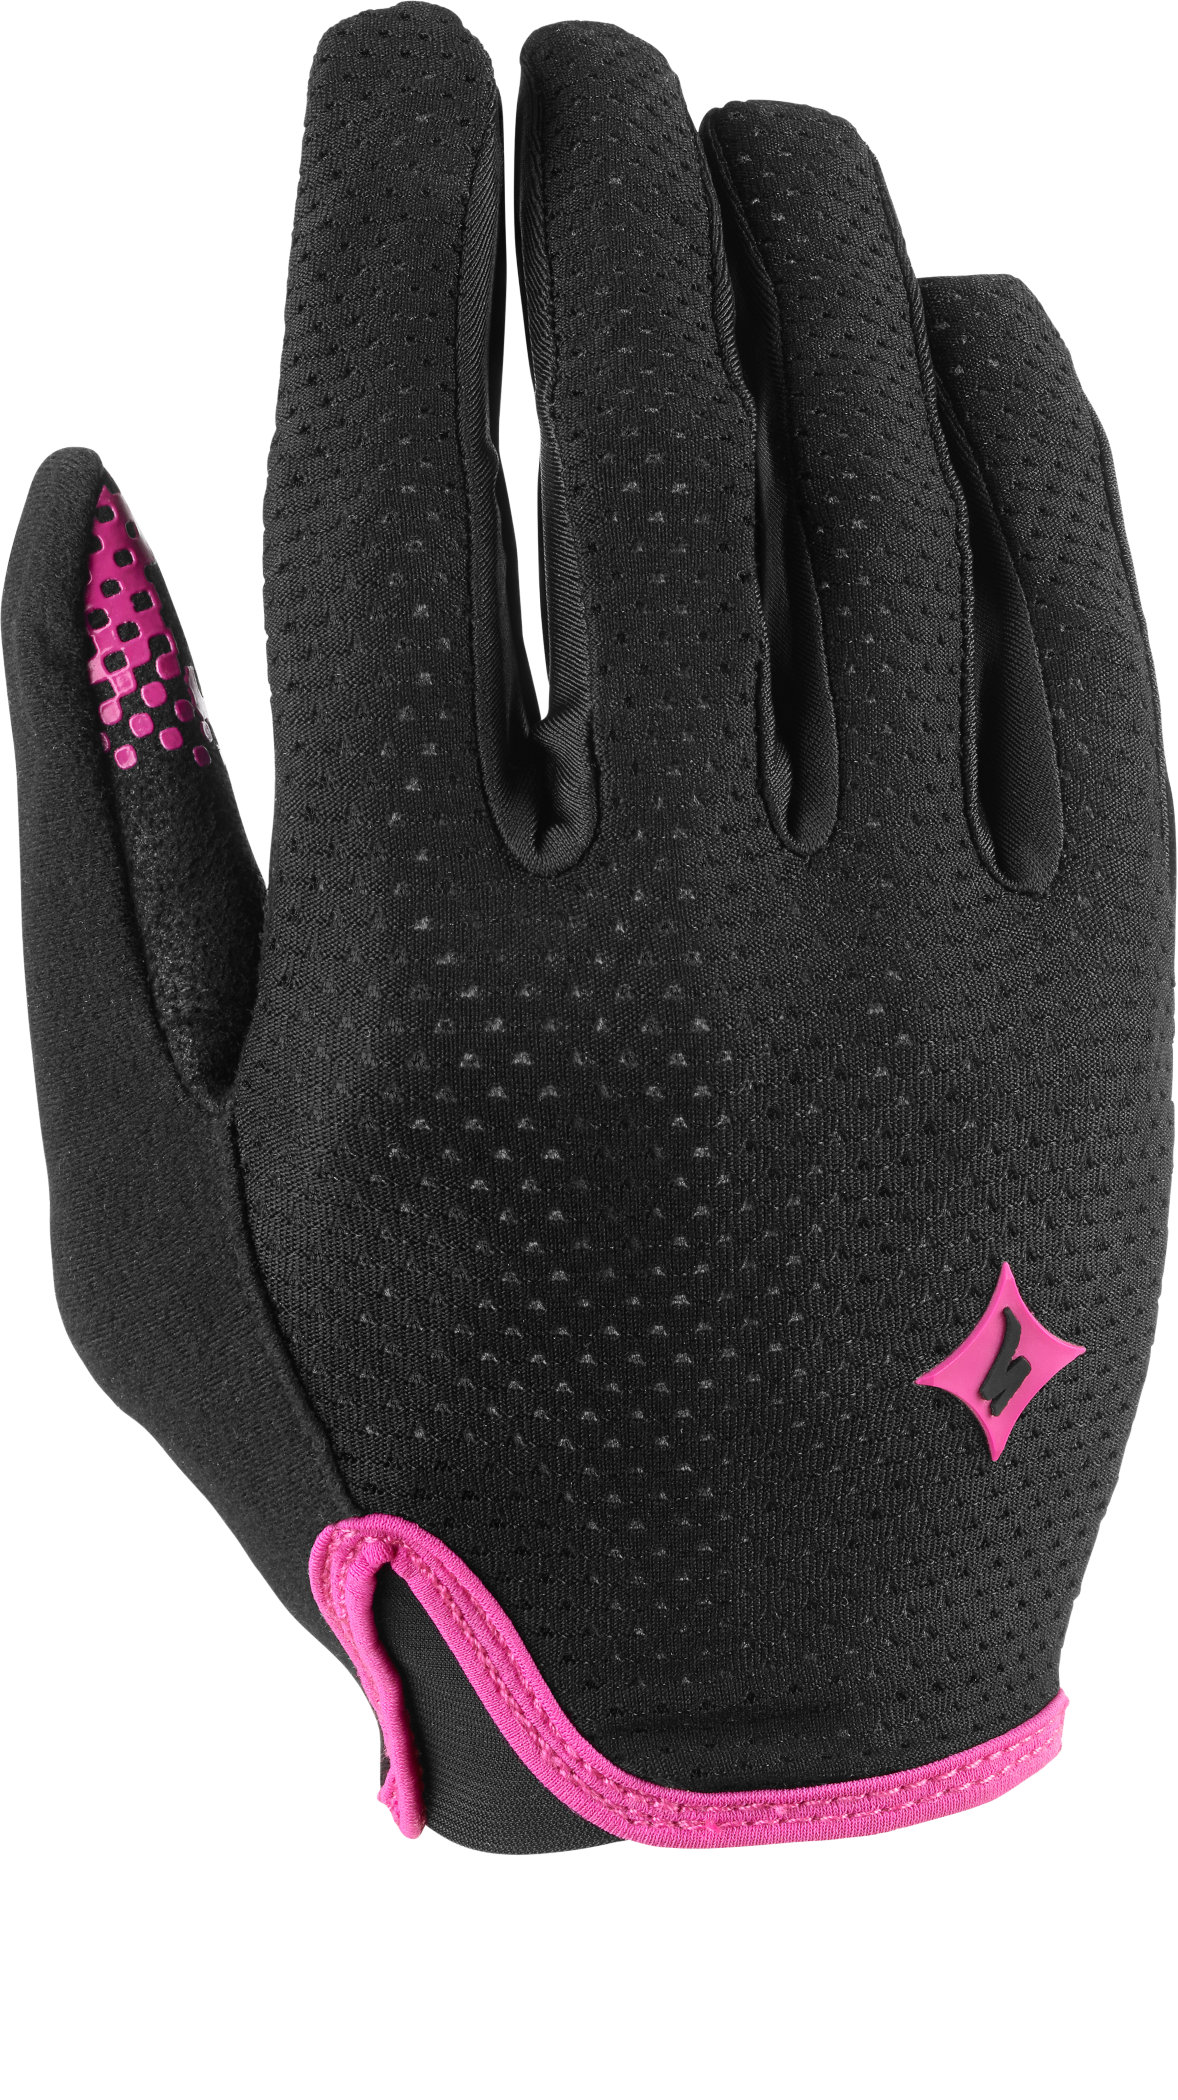 SPECIALIZED BG GRAIL GLOVE LF WMN BLK/PNK S - Bikedreams & Dustbikes